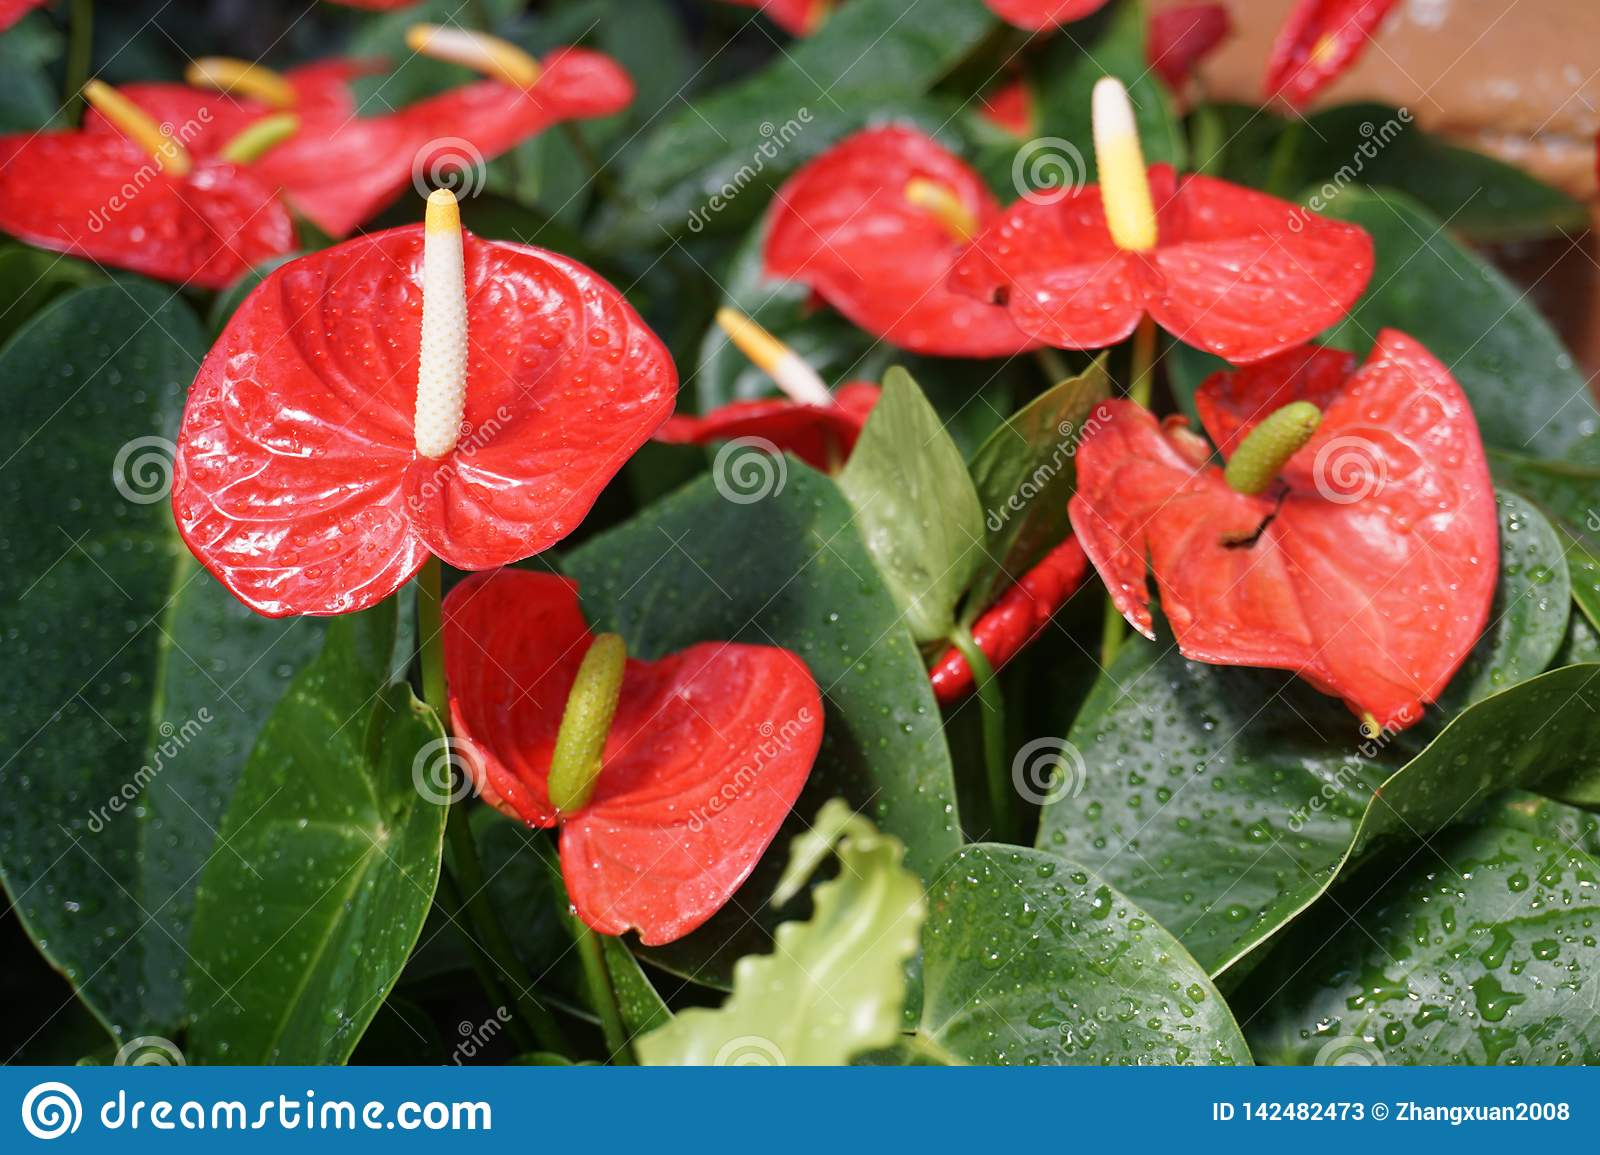 This is a flower called anthurium